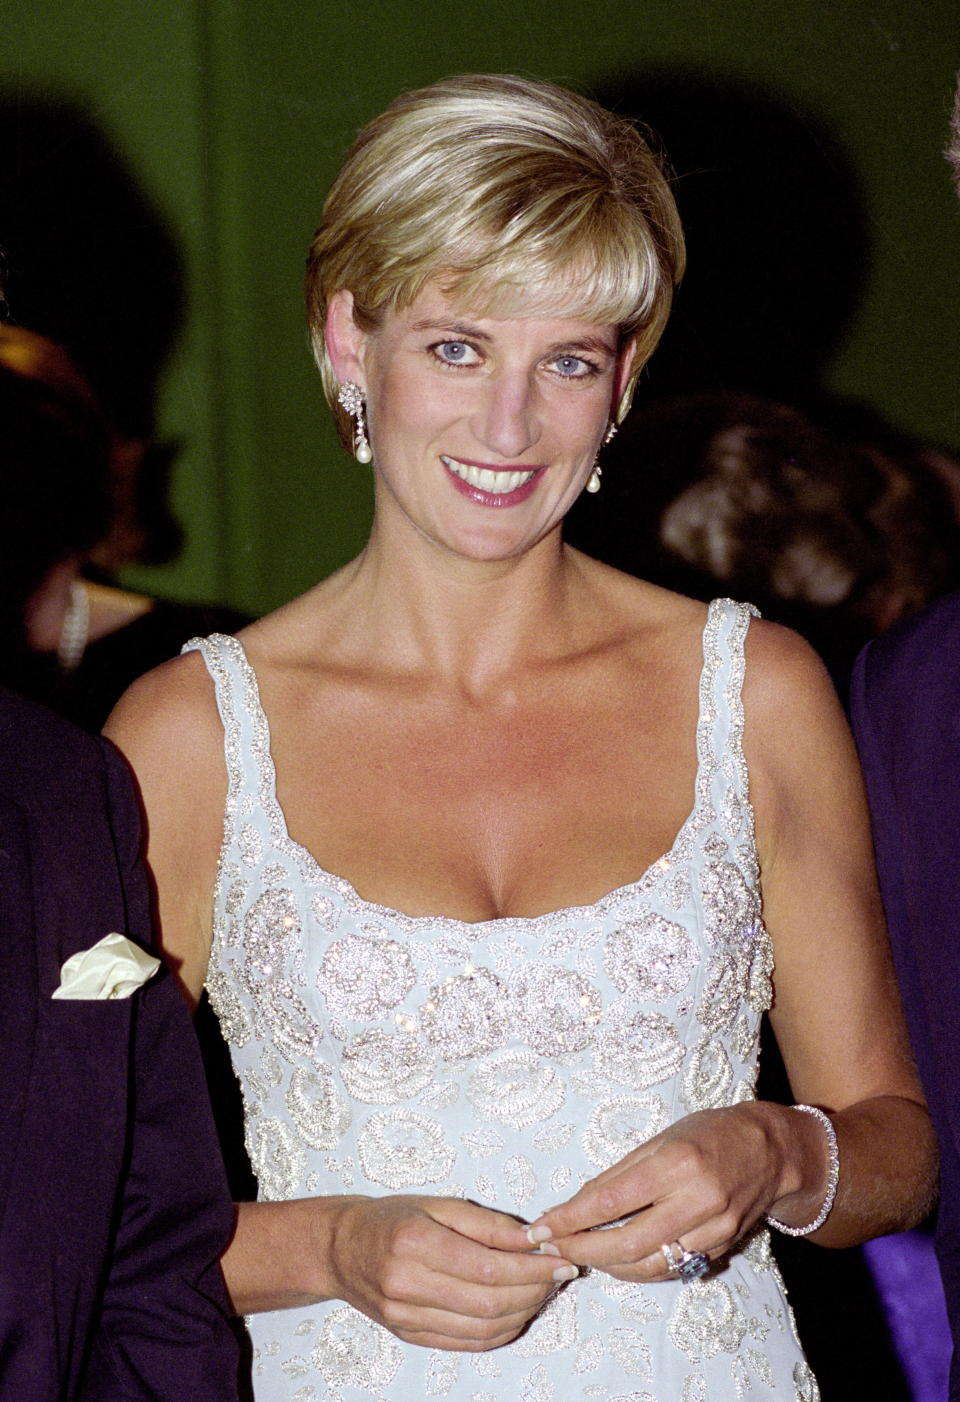 LONDON, UNITED KINGDOM - JUNE 02:  Diana, Princess Of Wales Wearing An Embroidered Cocktail Dress Designed By Fashion Designer Catherine Walker At The Private Viewing And Reception At Christies To Raise Funds For The Aids Crisis Trust And The Royal Marsden Hospital Cancer Fund.  (Photo by Tim Graham Photo Library via Getty Images)